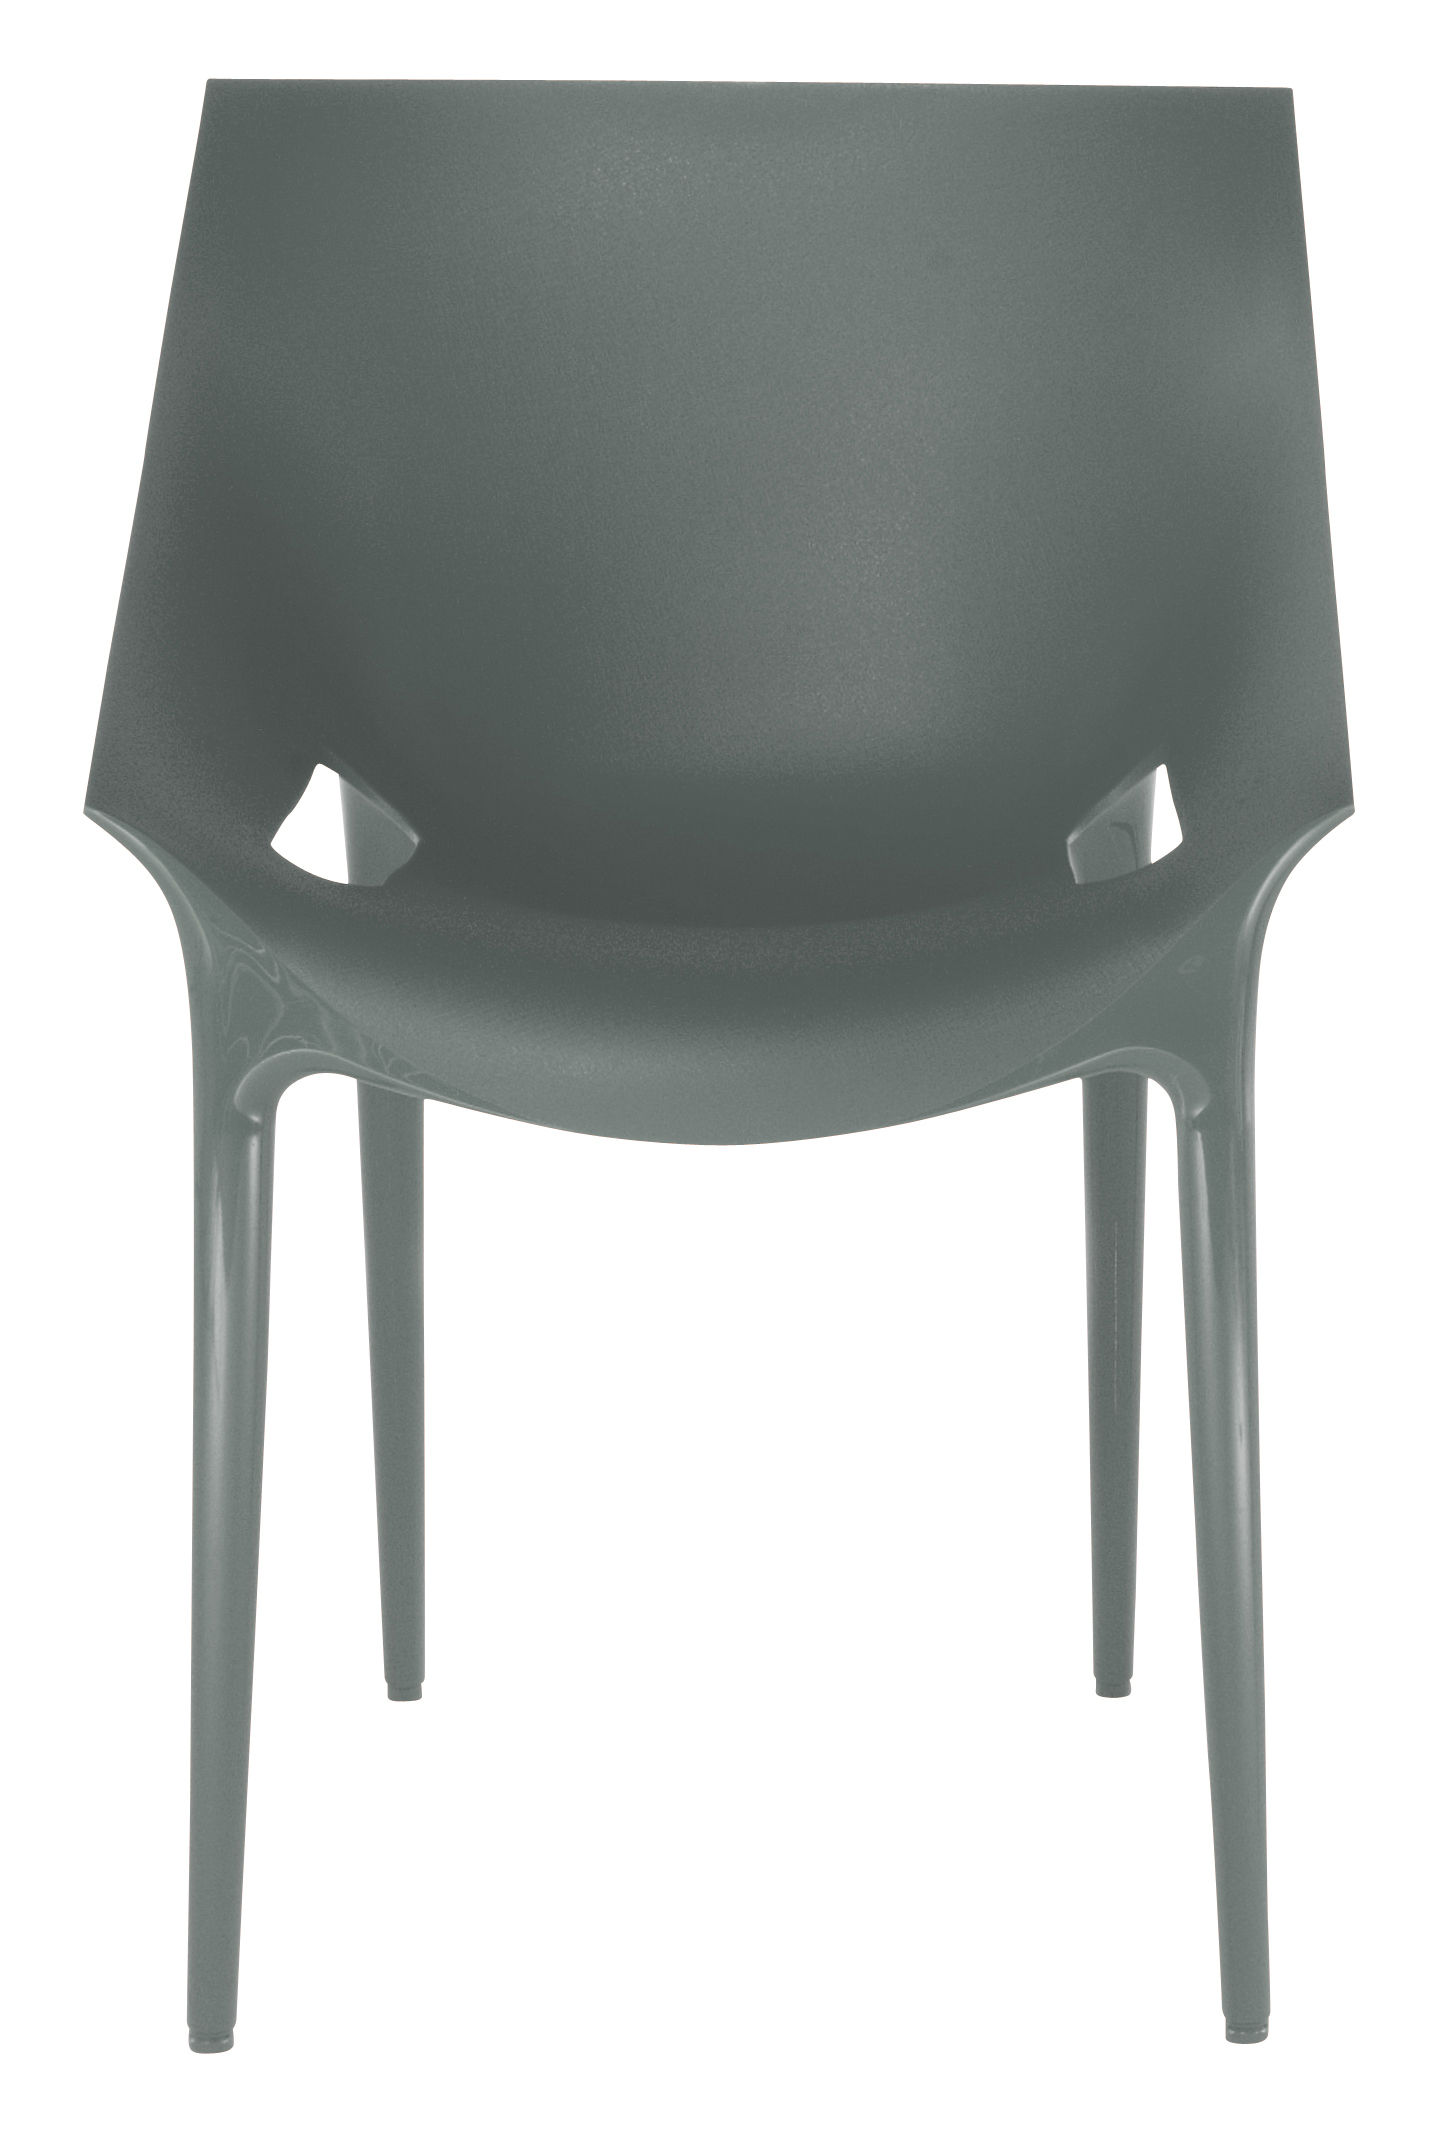 Furniture - Chairs - Dr. YES Stackable armchair - Polypropylene by Kartell - Grey - Polypropylene